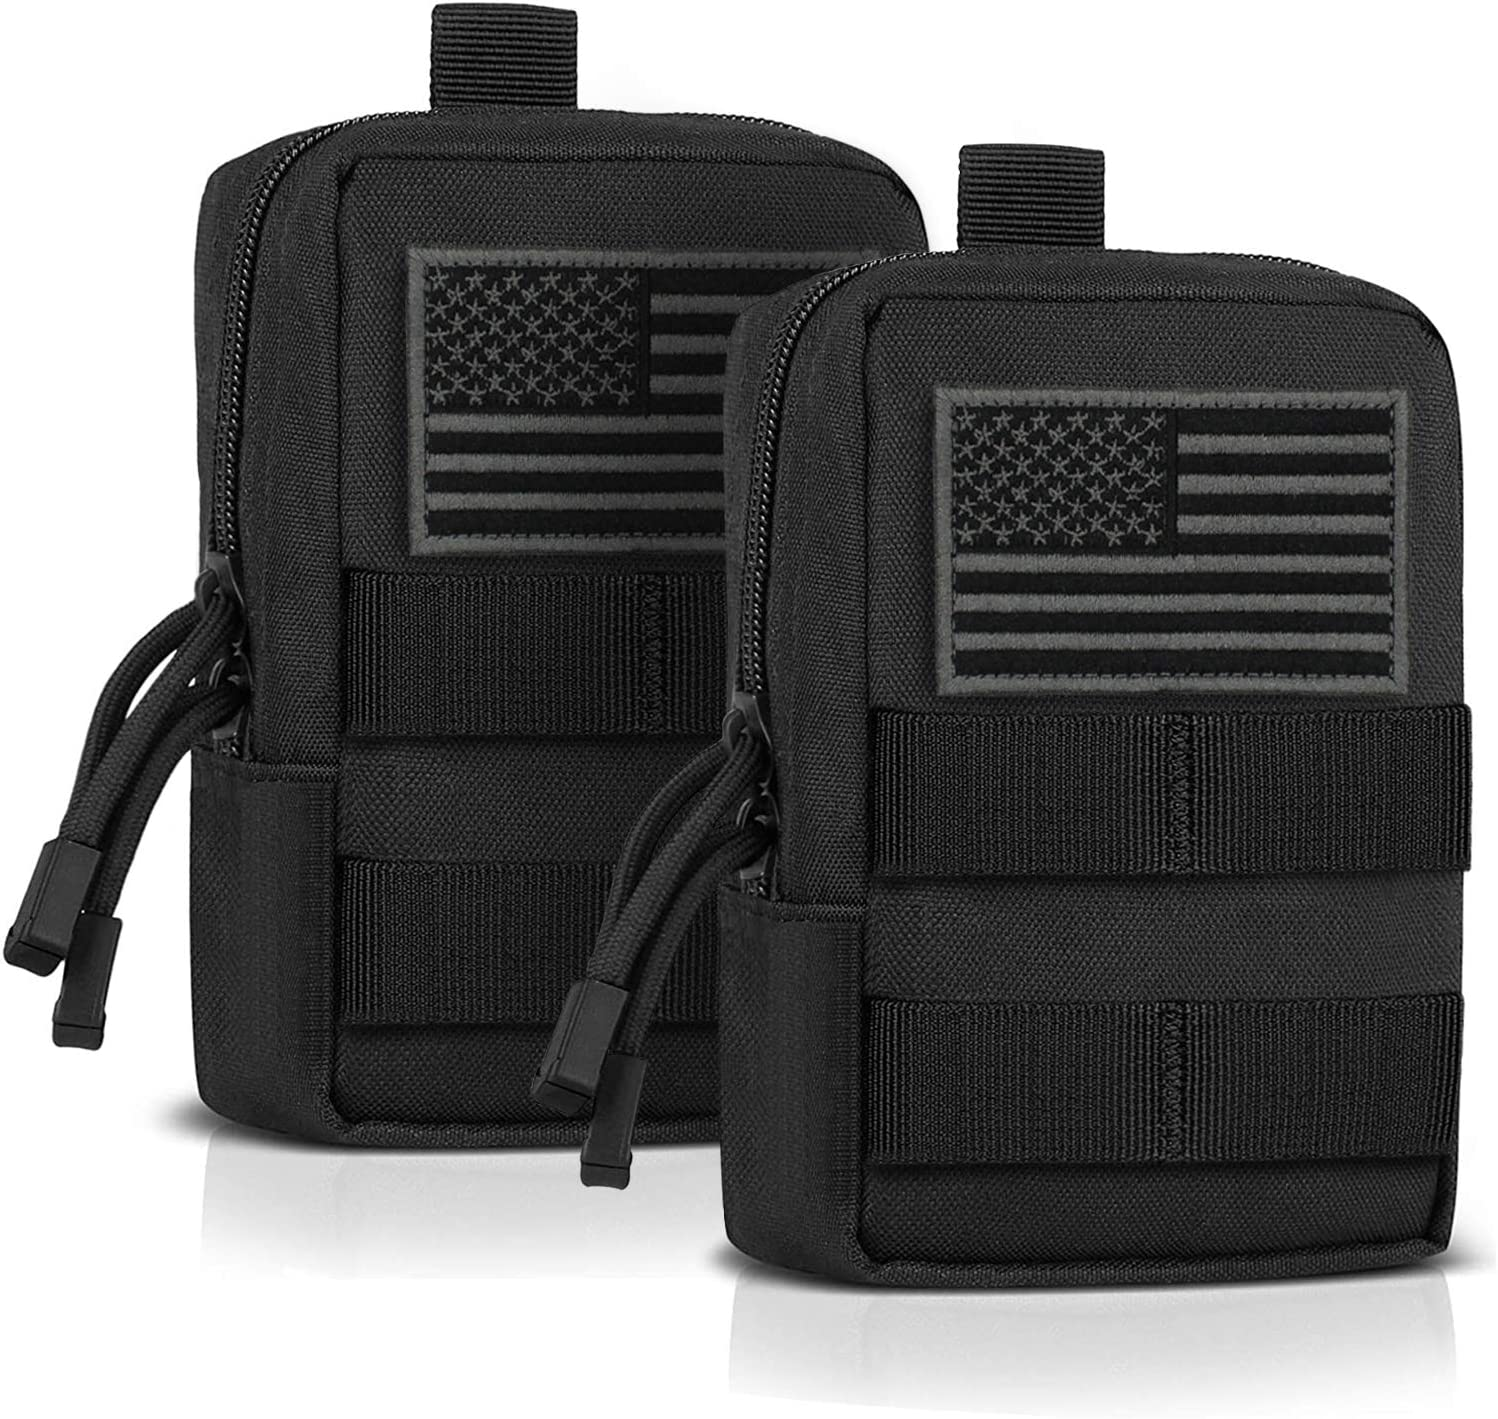 YDa MOLLE Pouch EDC Pouch Multi-Purpose Compact Tactical Waist Bags Small Utility Pouch 2 Pack : Sports & Outdoors